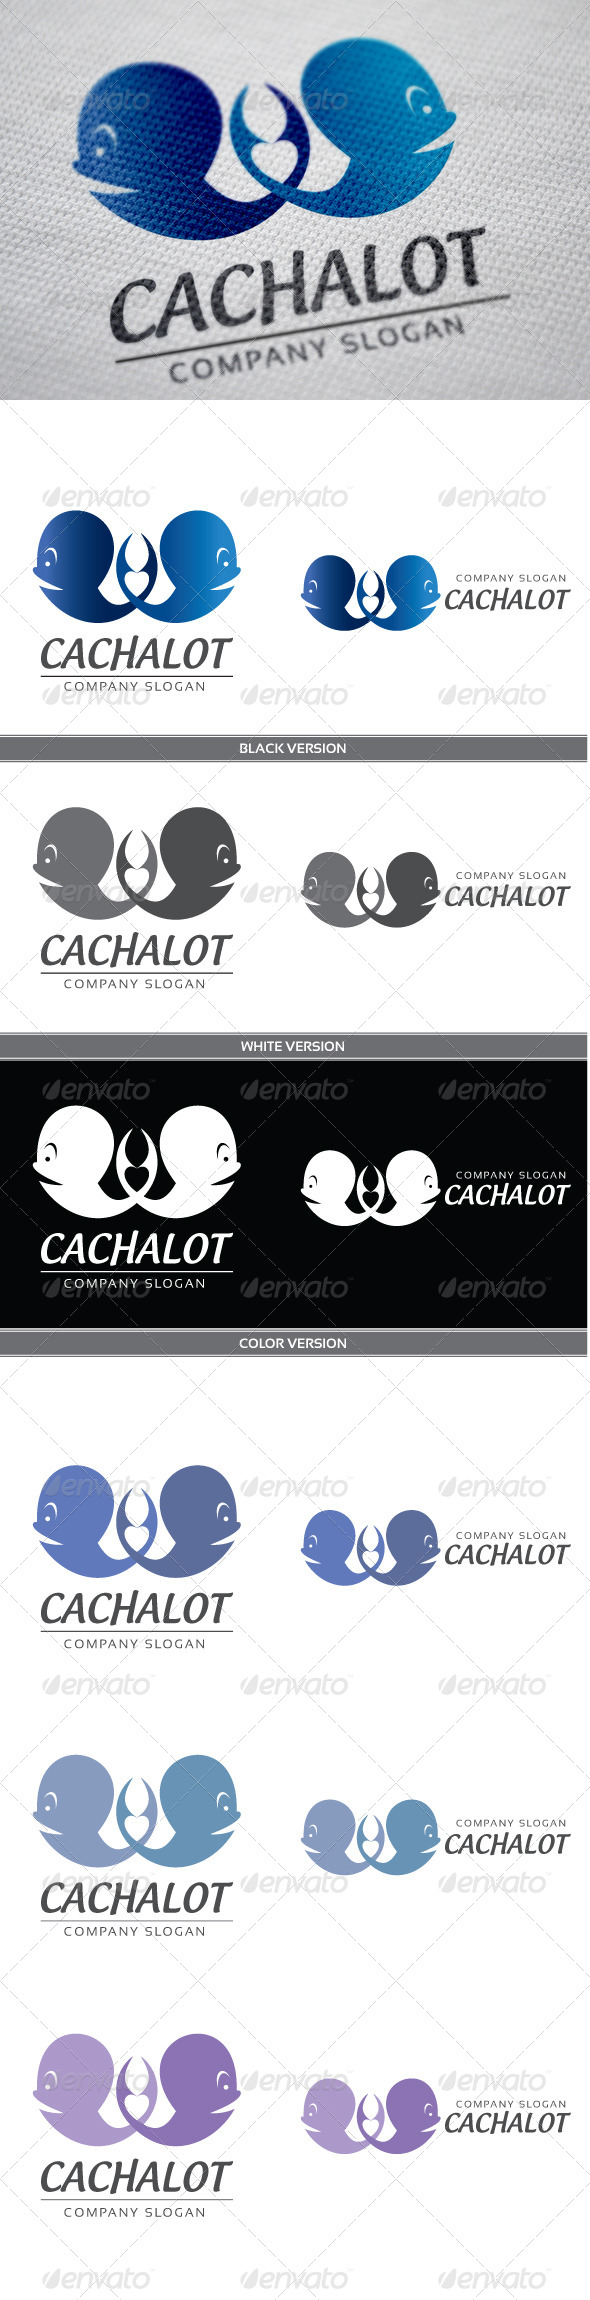 GraphicRiver Cachalot 3766516